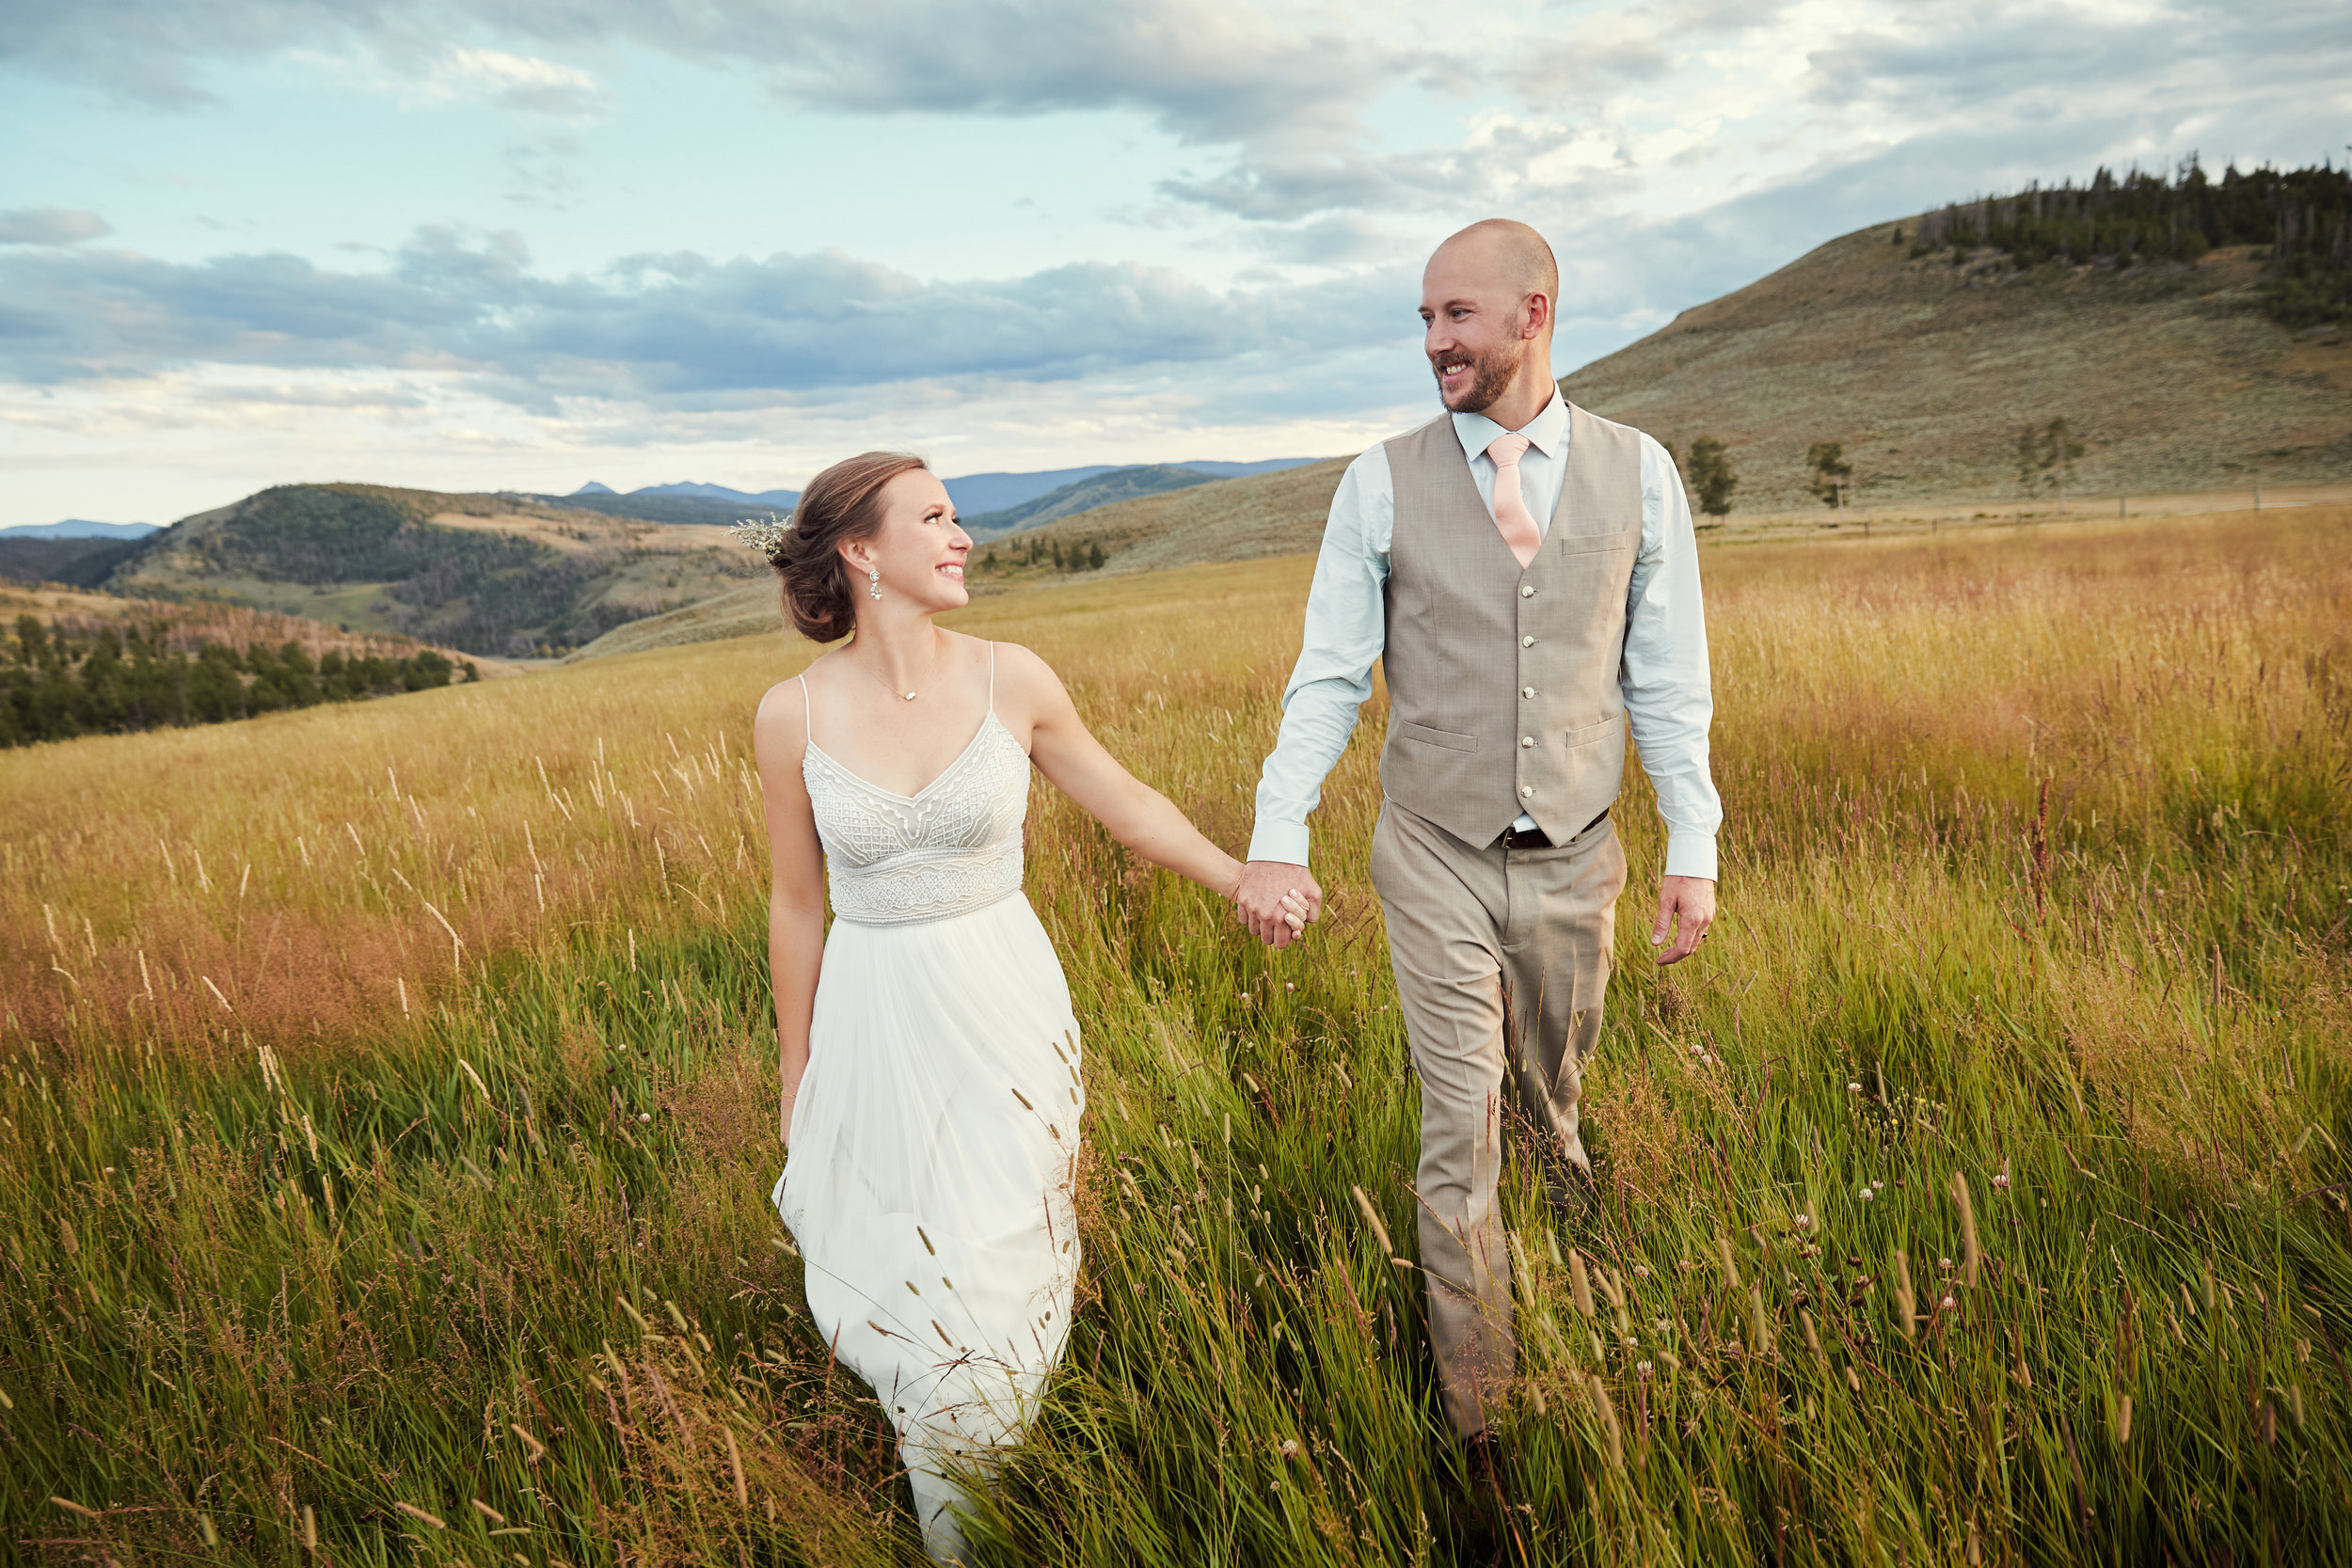 Alex + Tim's Strawberry Creek Ranch Wedding - Granby, CO // Meadow // Hawaiian Themed WeddingWedding Day Blog Post